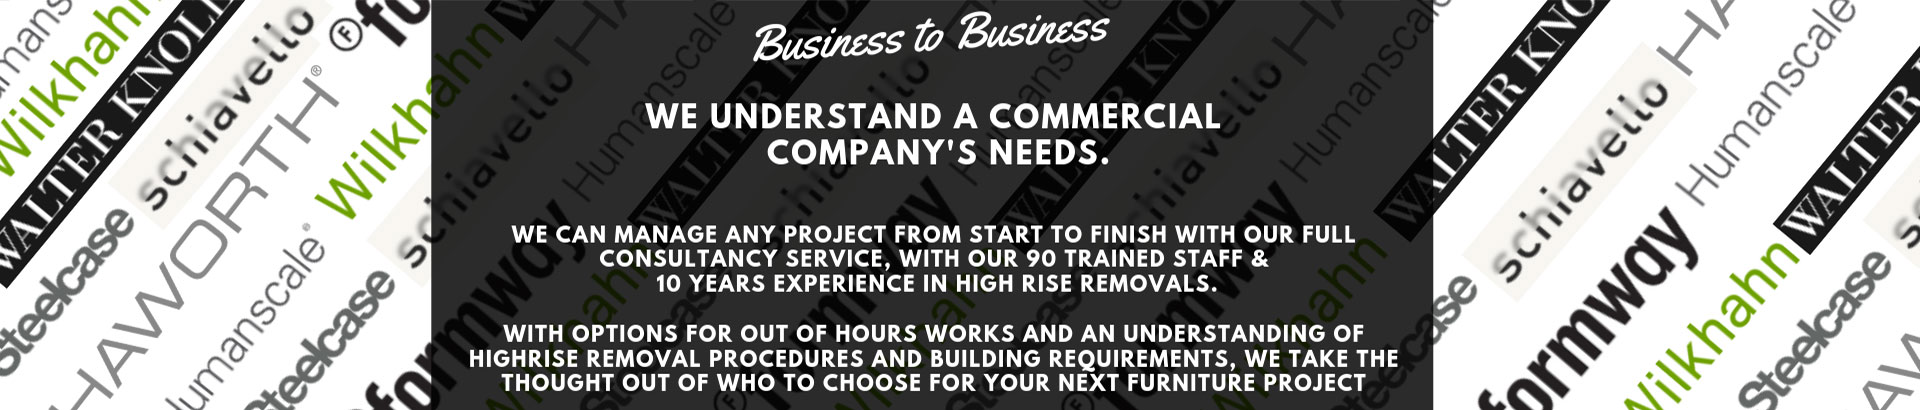 Business to business sales. Working with your business day or night